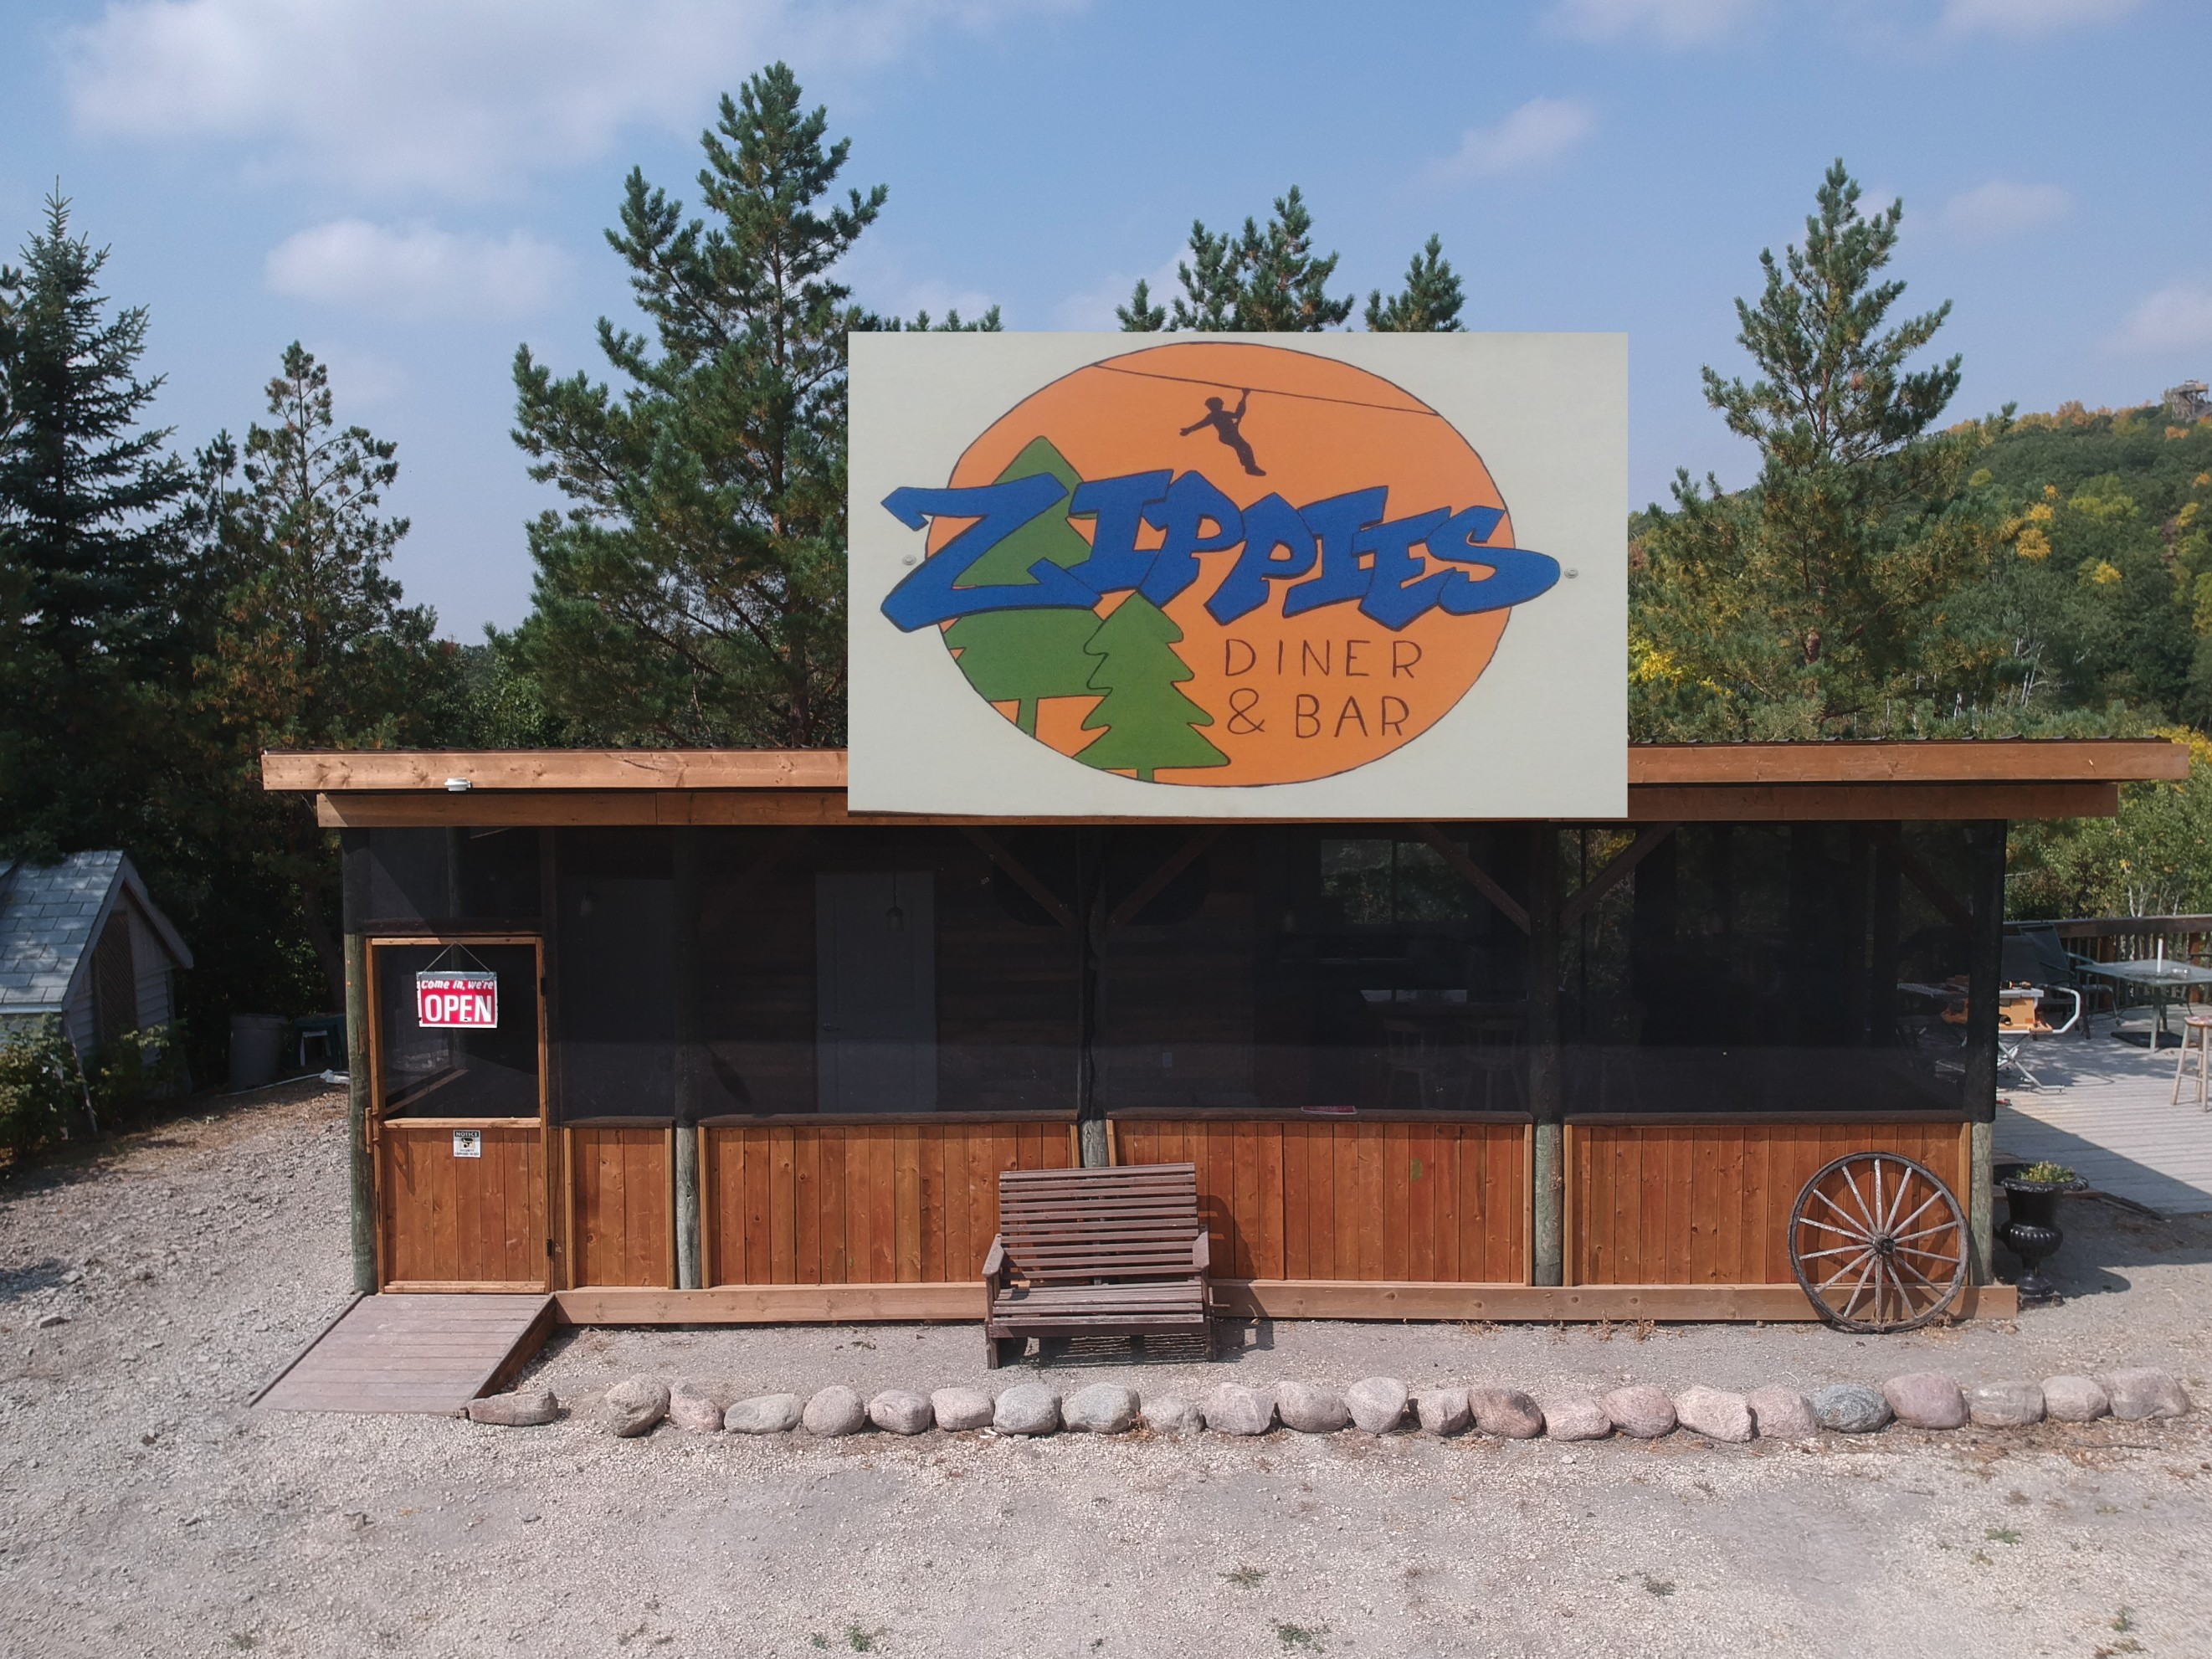 zippies diner and bar